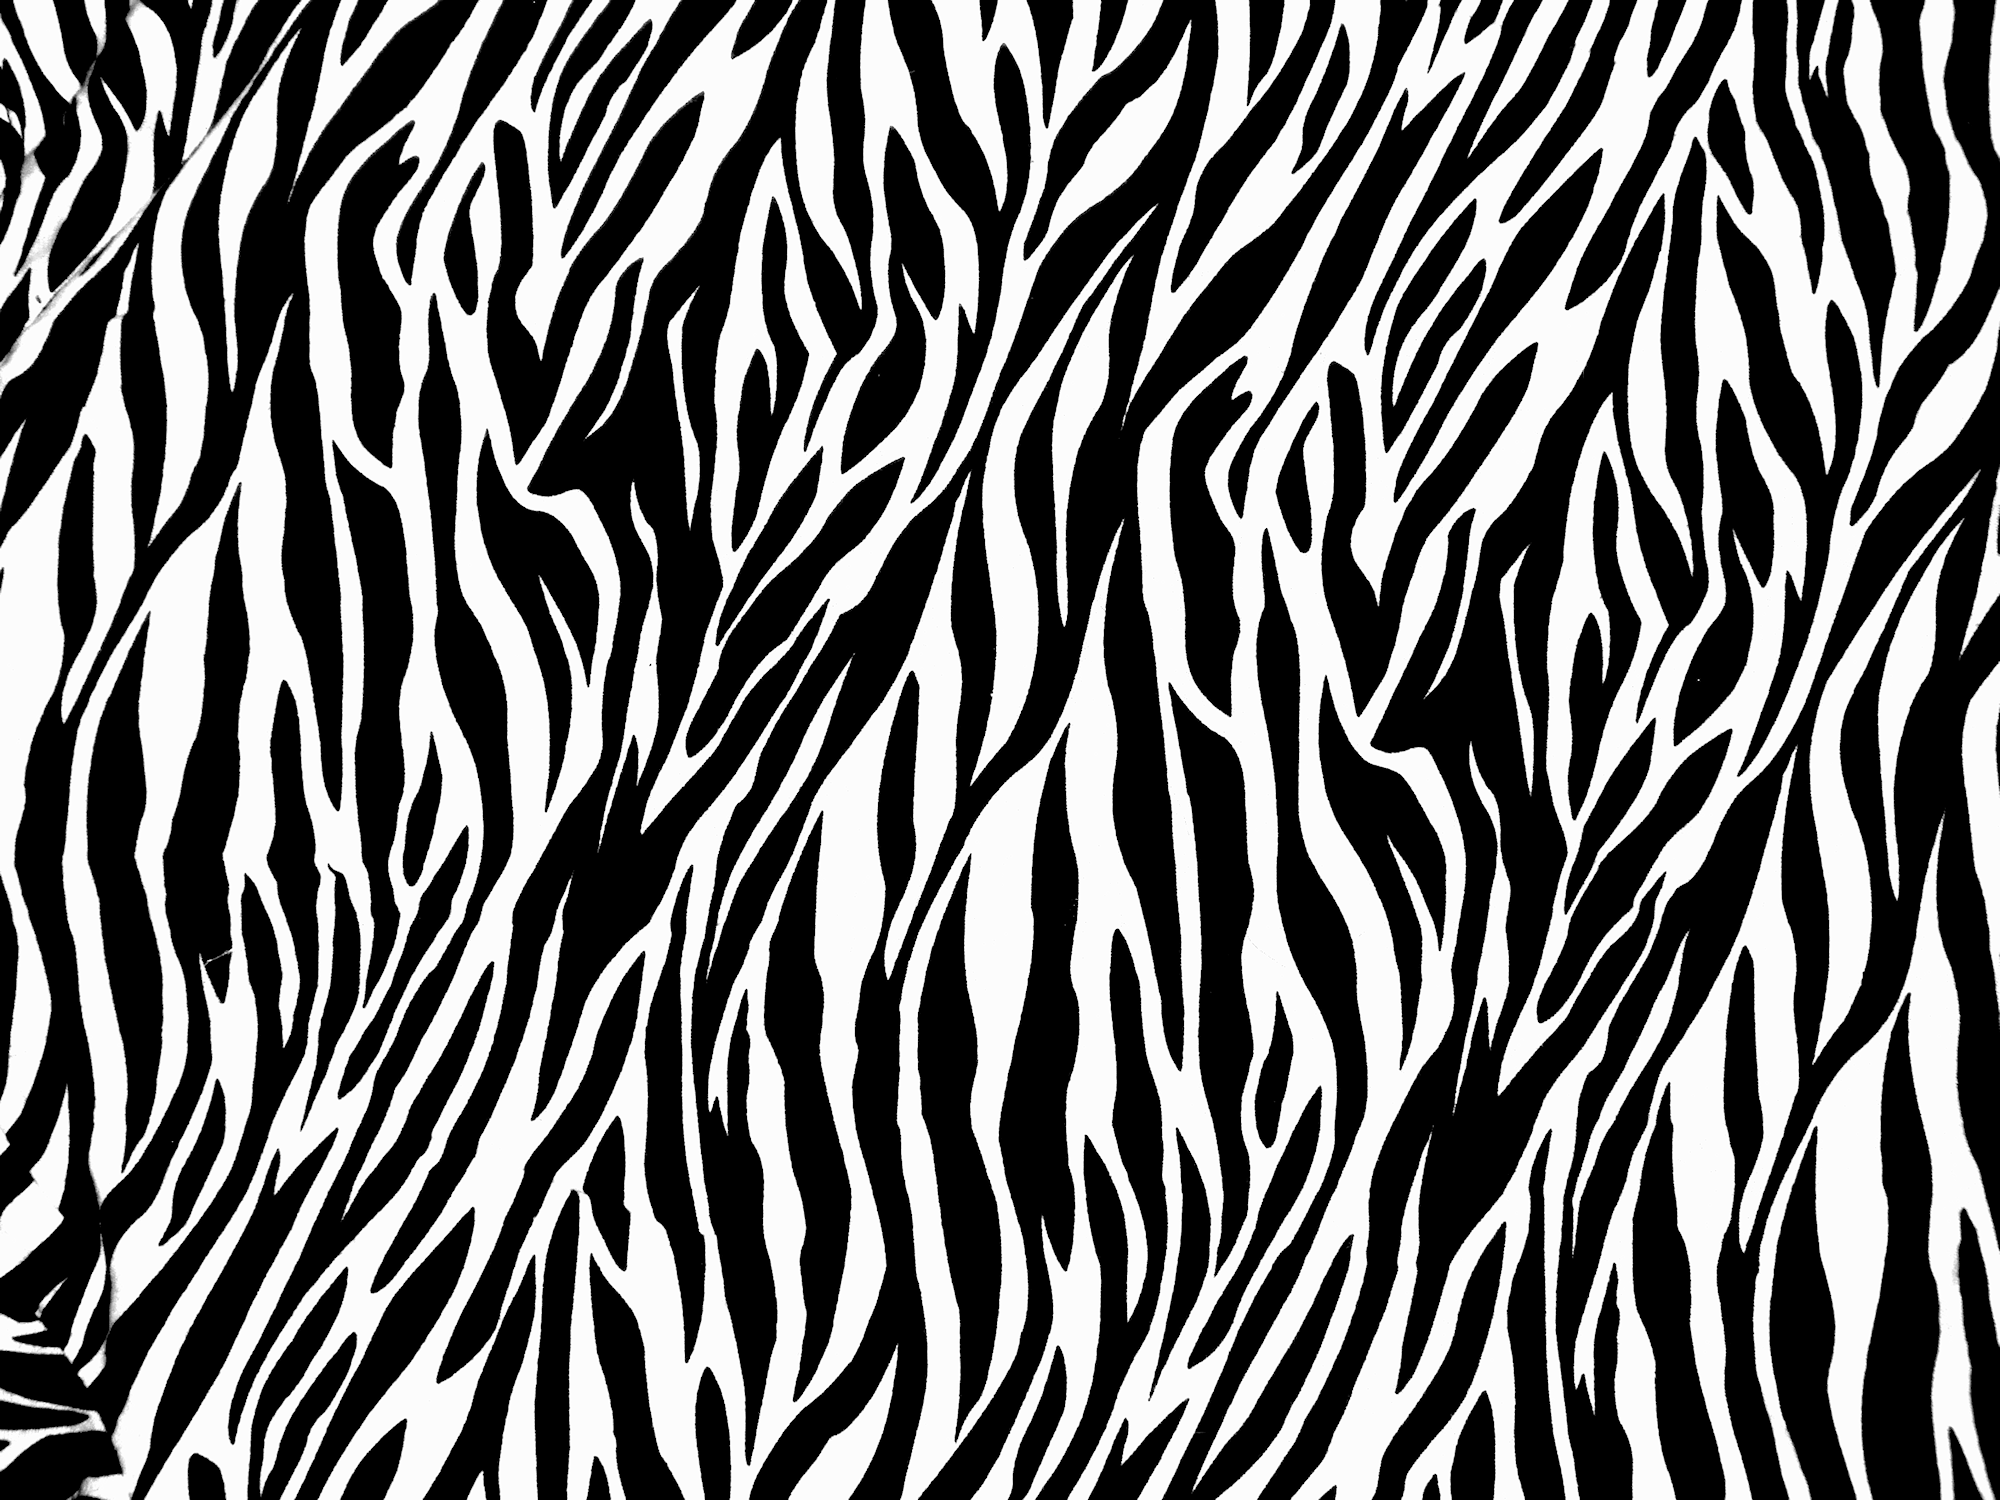 zebra print texture by ghoulskout